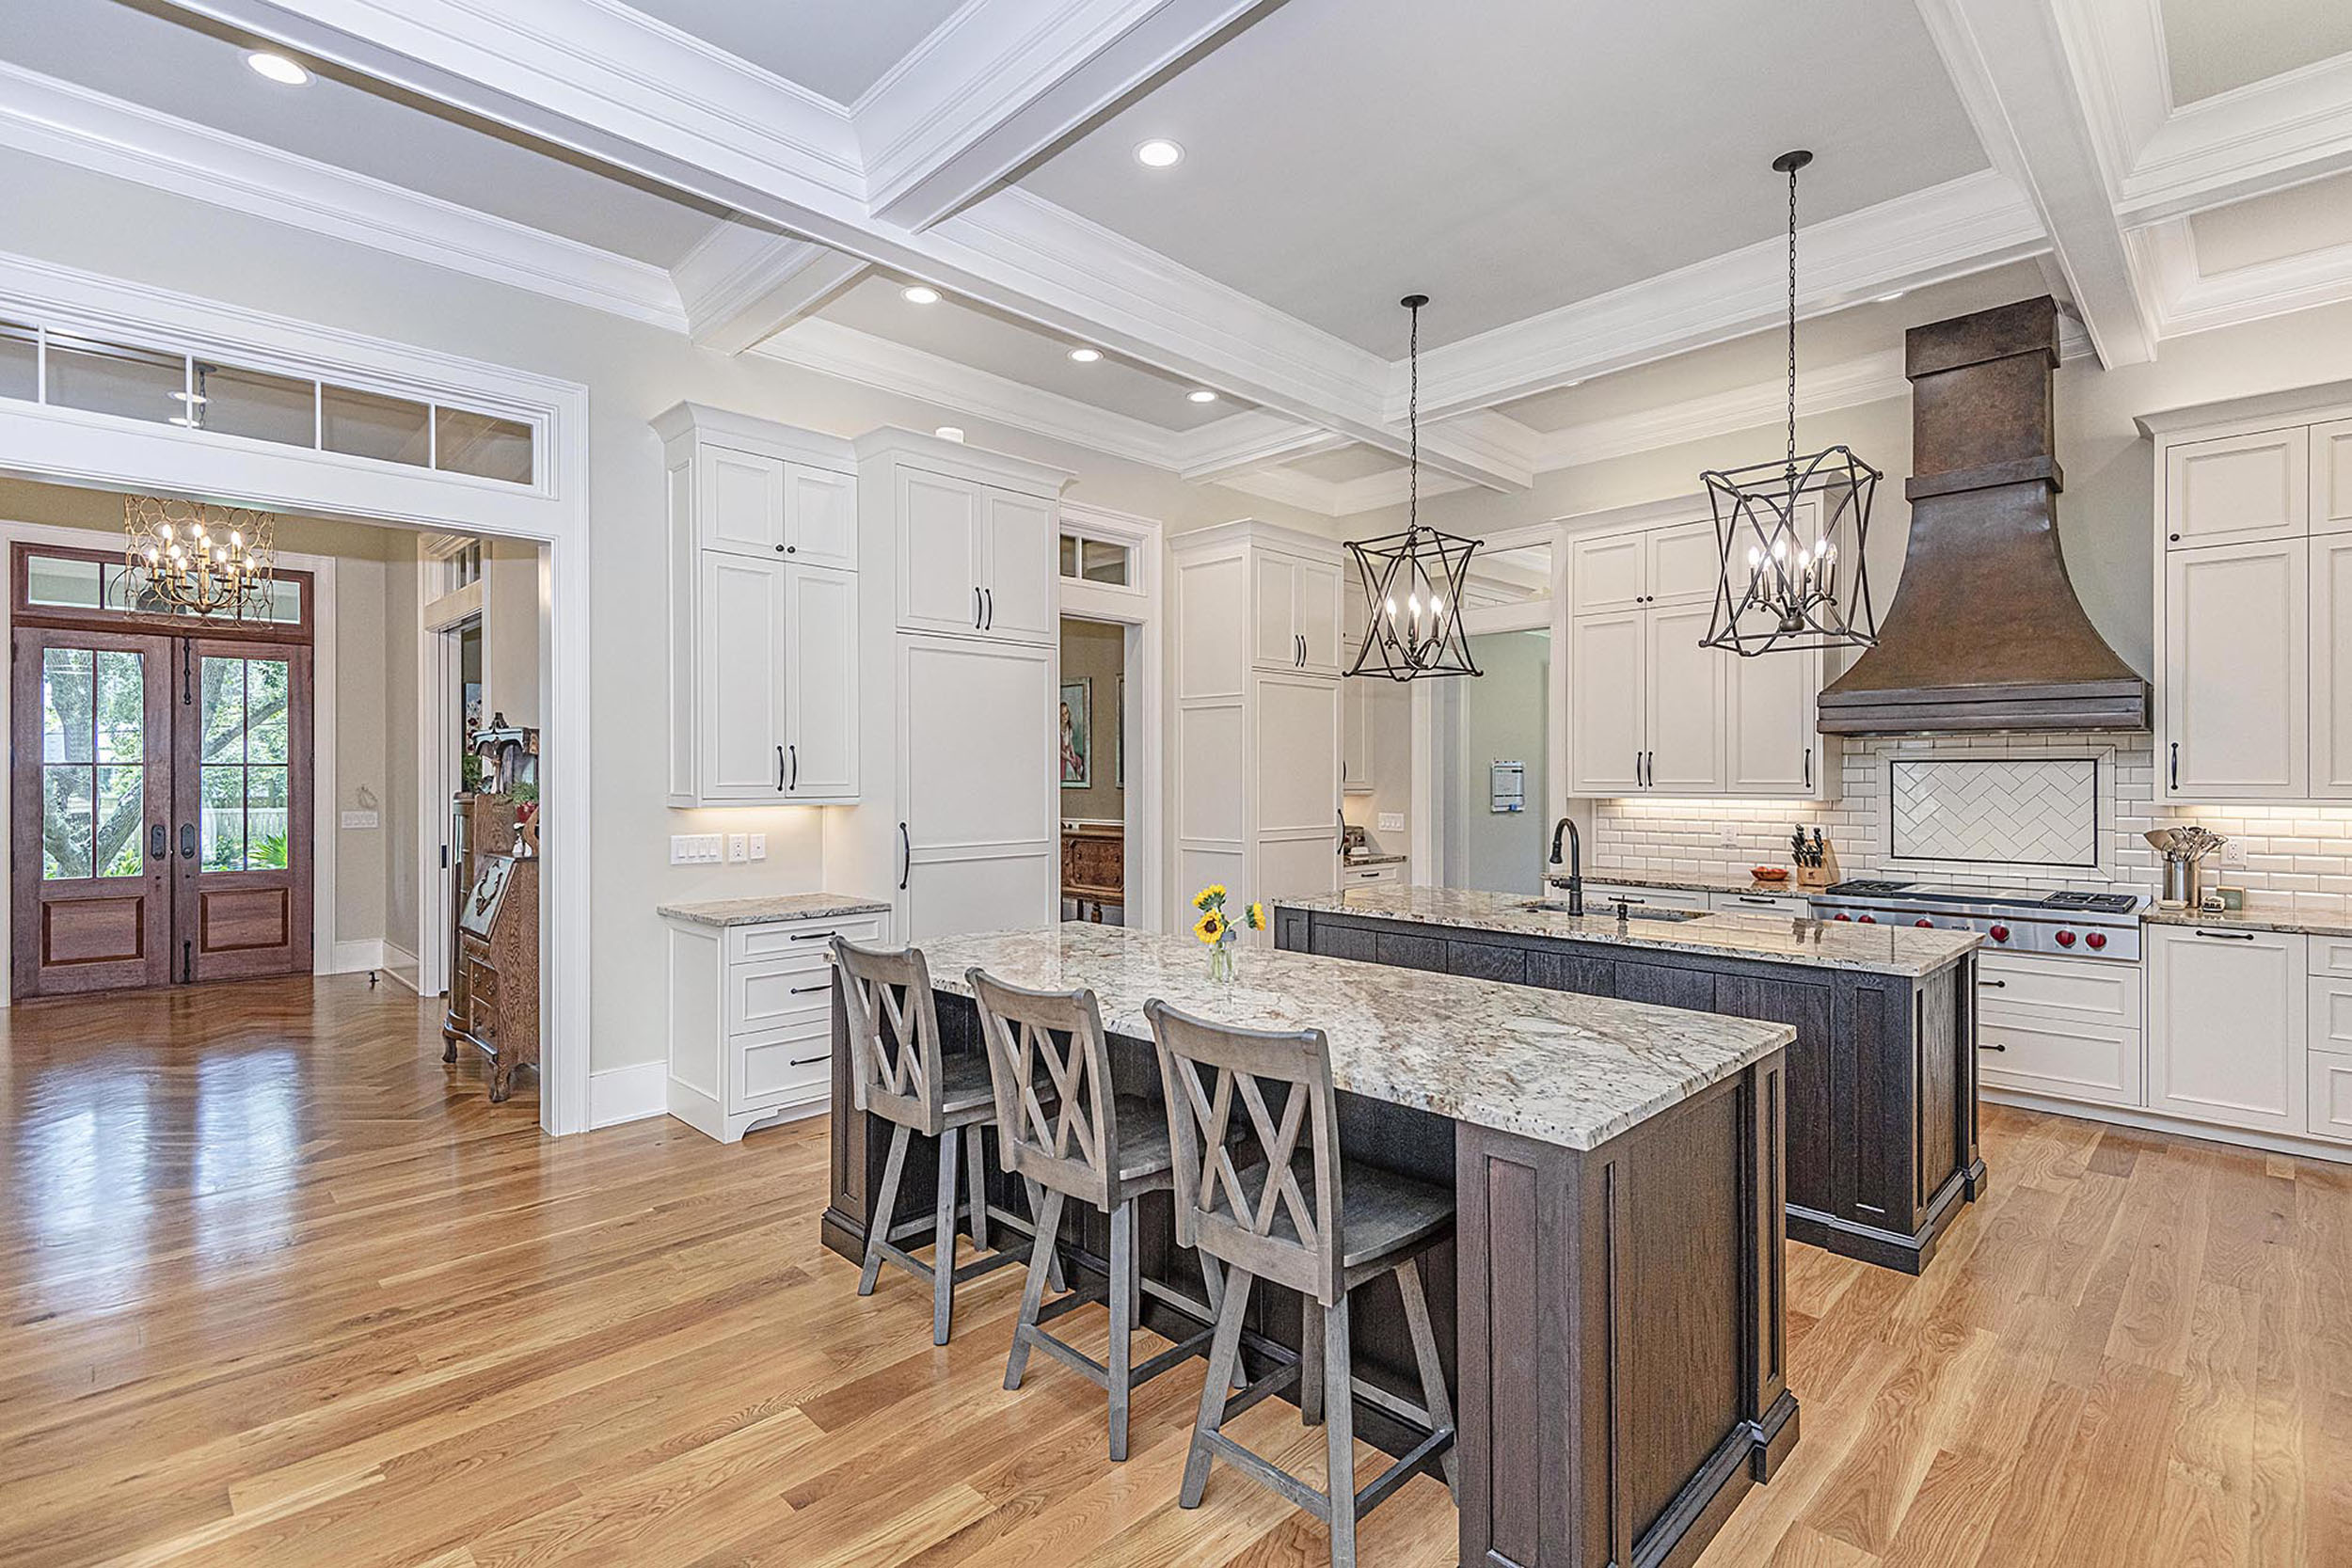 custom kitchen design by Madigan Projects